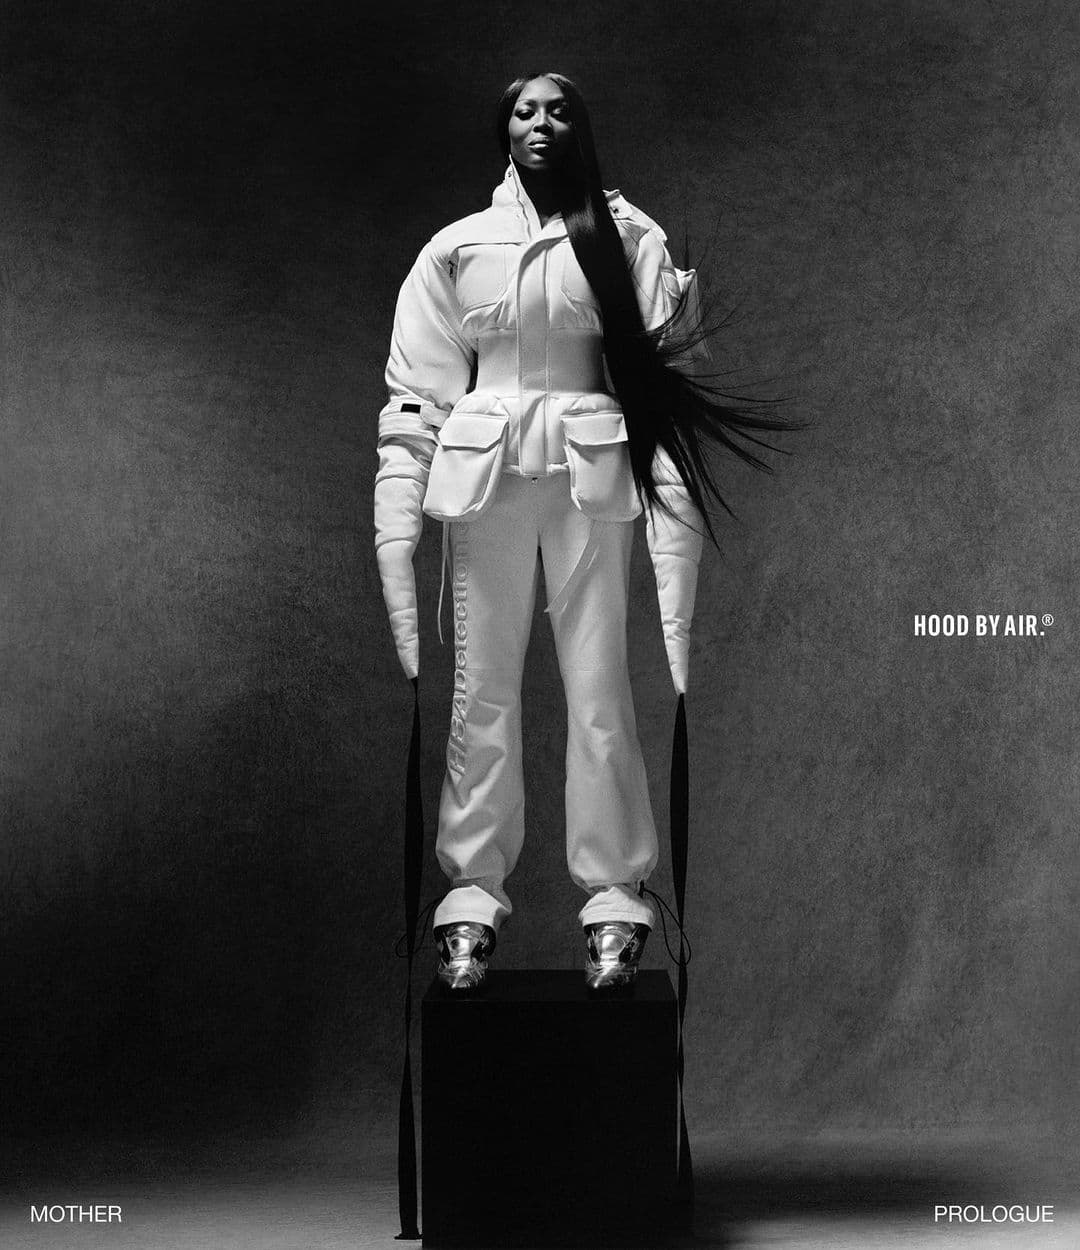 Hood by Air Spring 2021 Ad Campaign Film & Photos